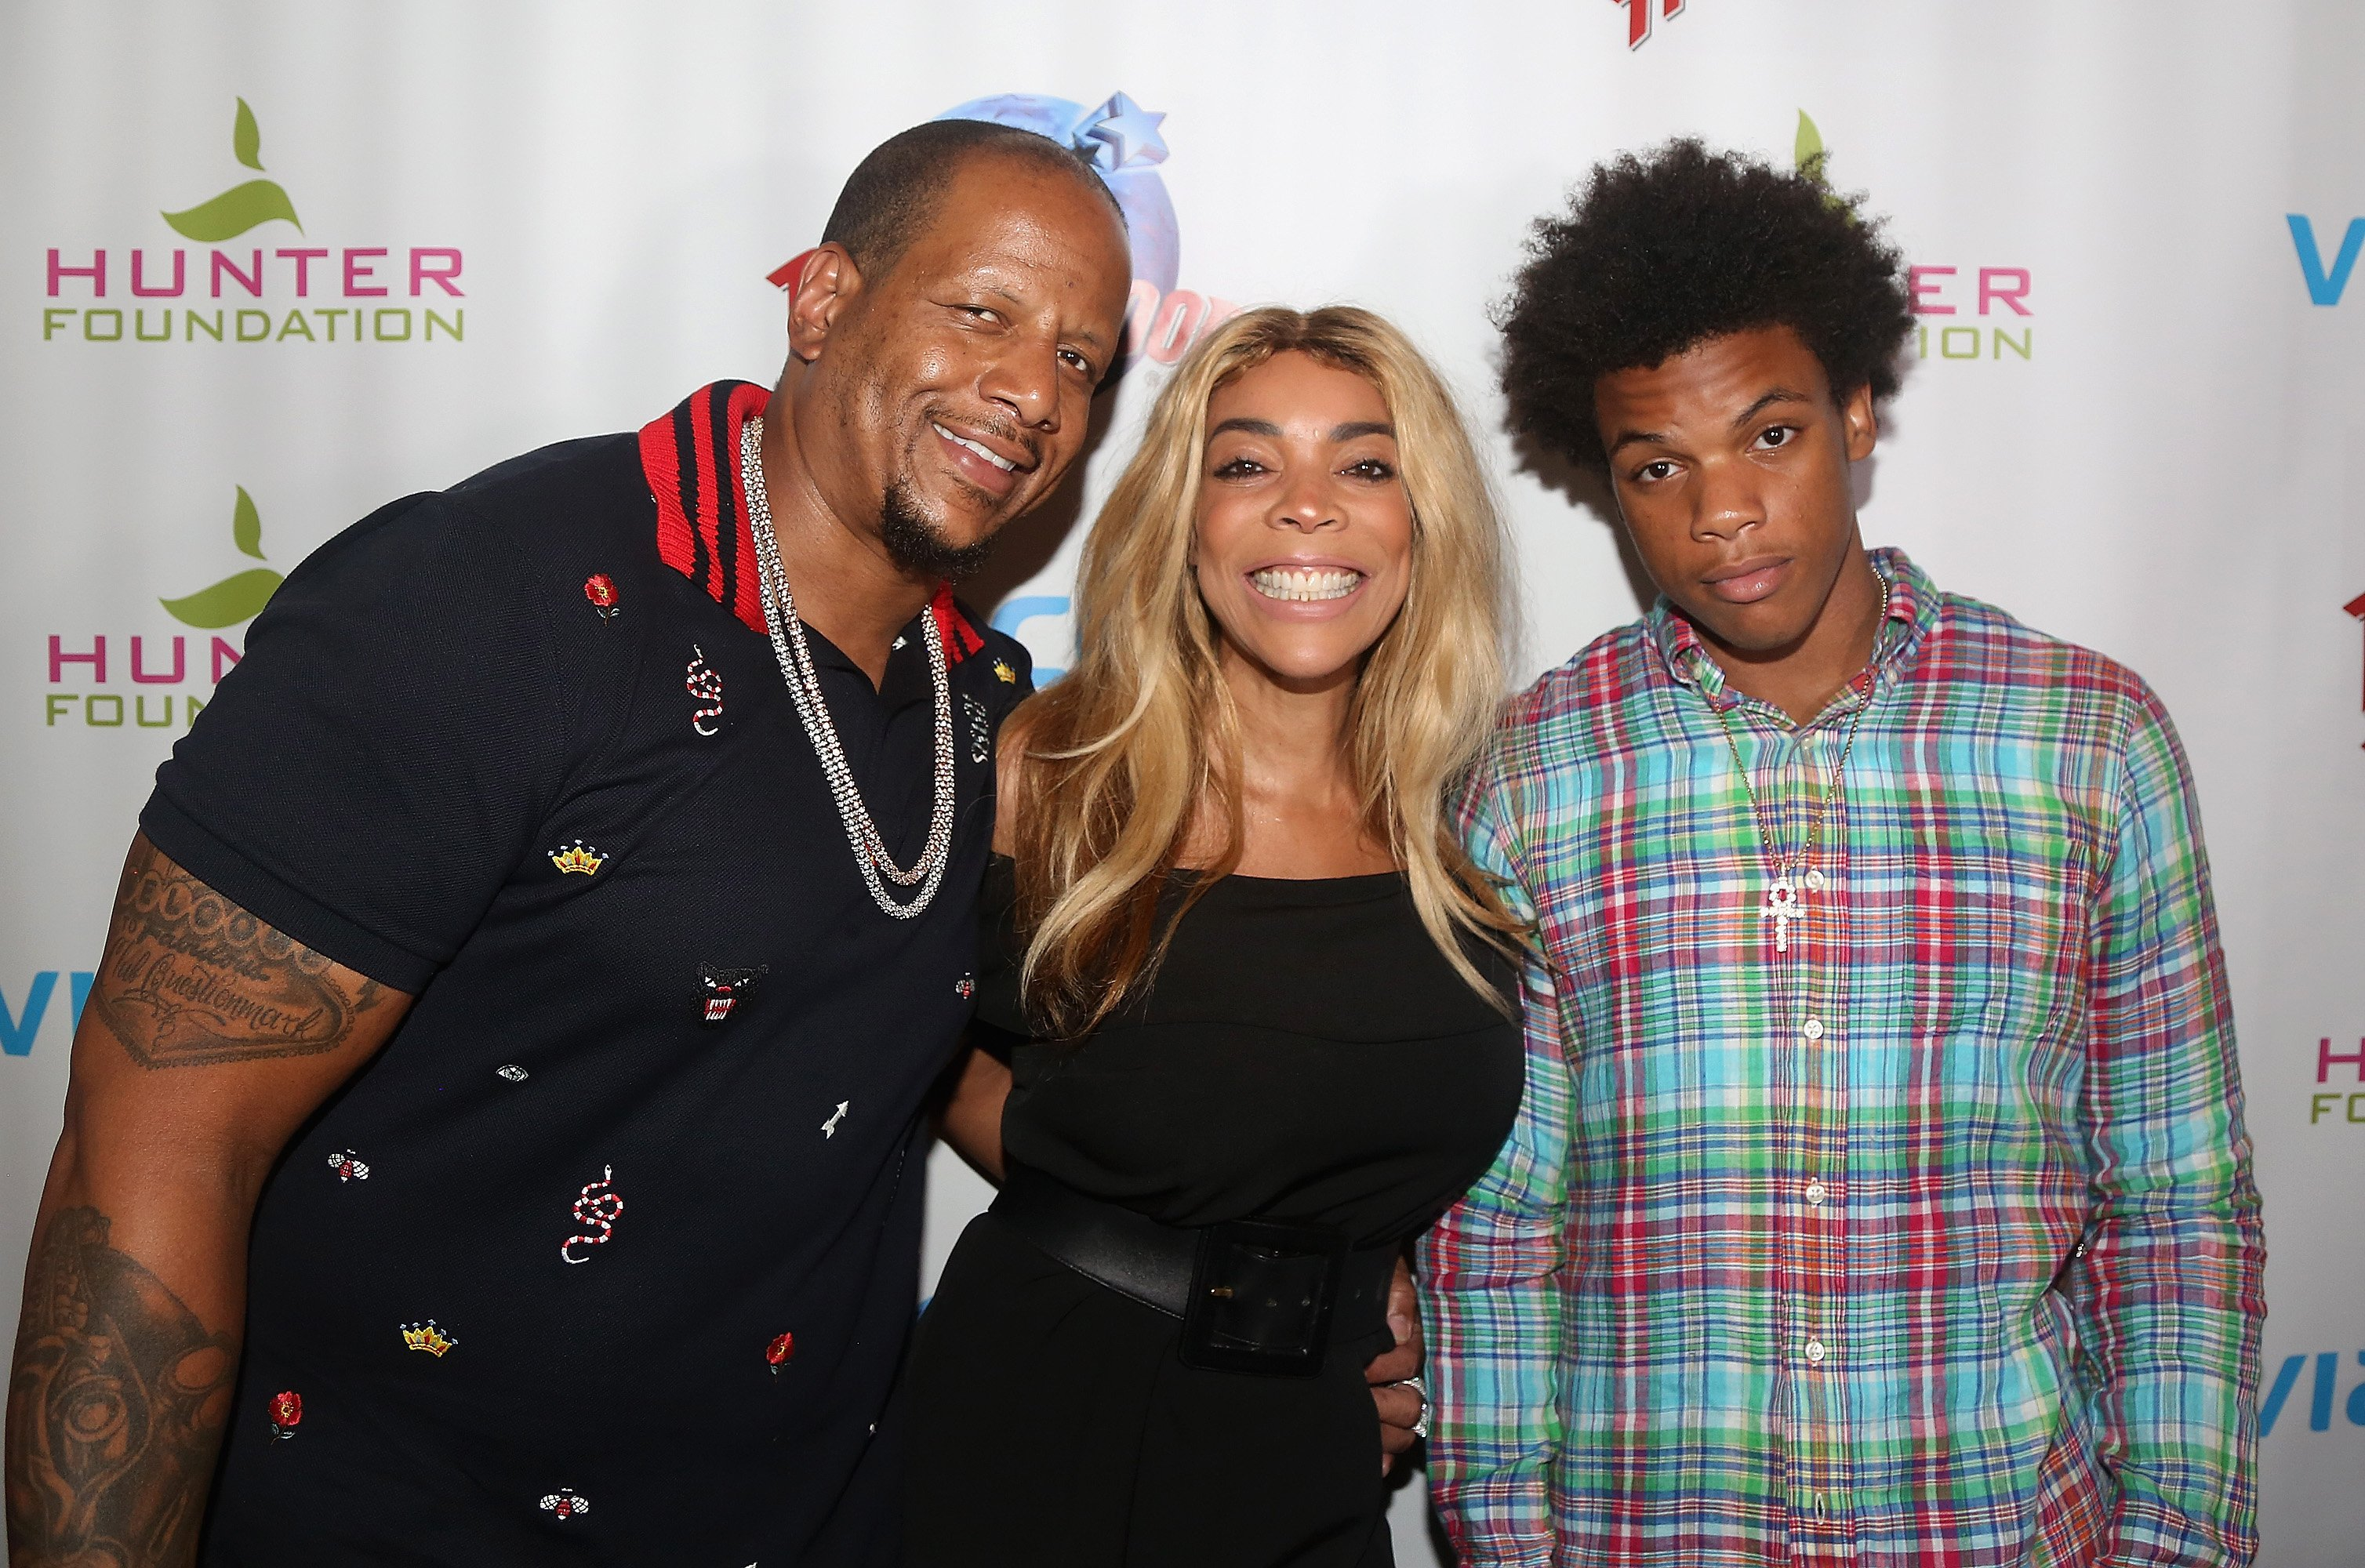 (L-R) Kevin Hunter, Wendy Williams & Kevin Hunter Jr. at Planet Hollywood Times Square on July 11, 2017 in New York City | Photo: Getty Images